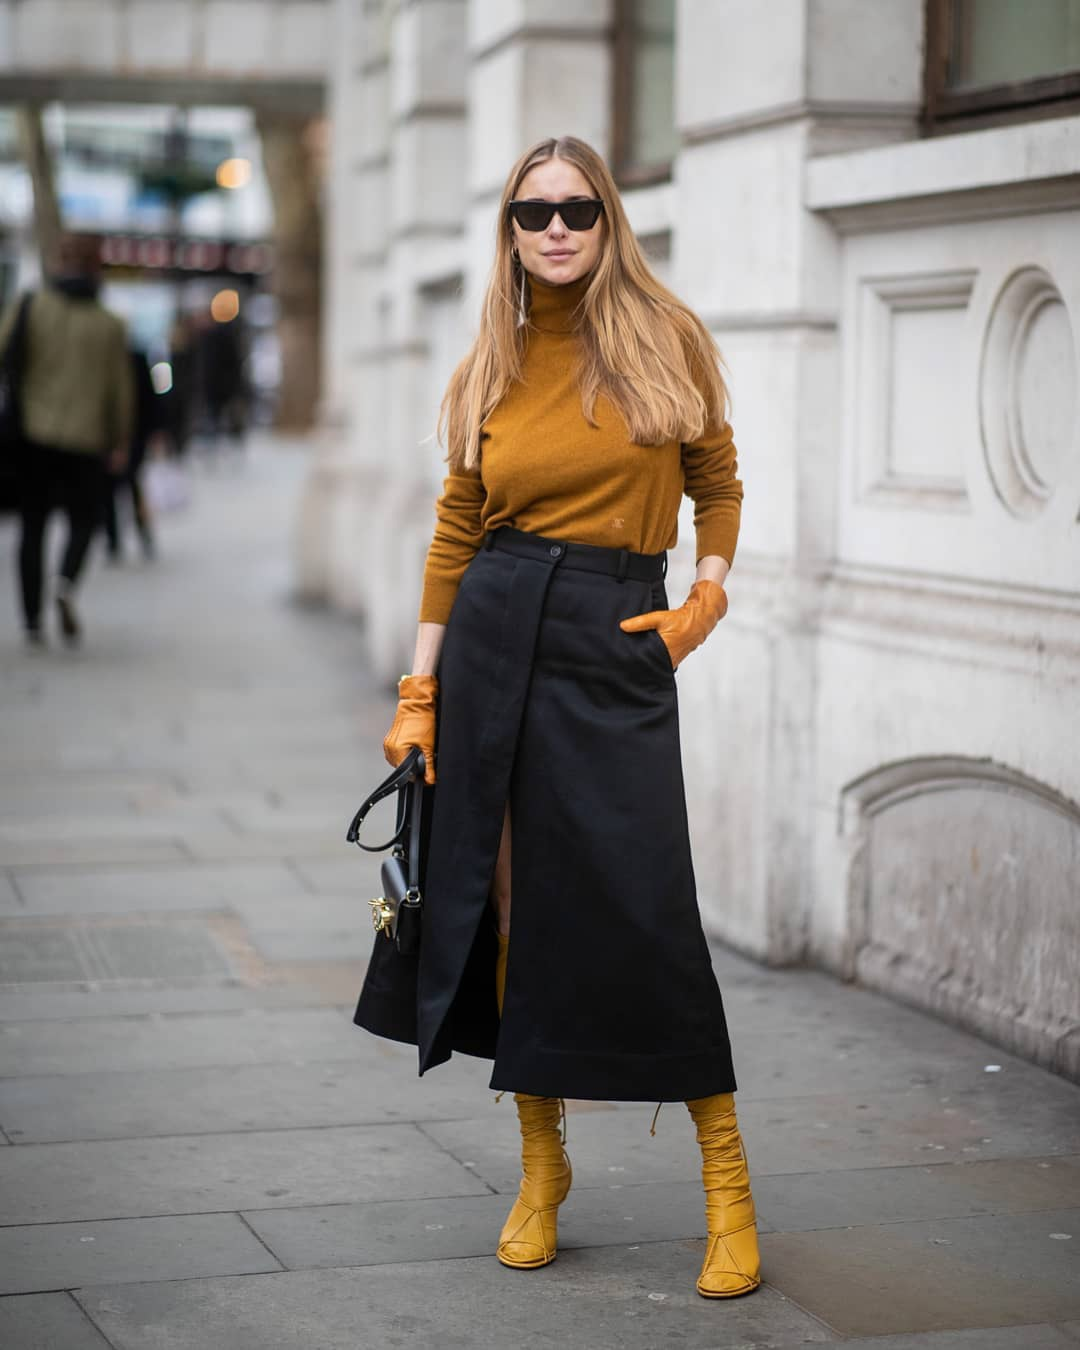 sweater turtleneck sweater mustard high waisted skirt navy skirt slit skirt midi skirt celine sandals knee high socks gloves navy